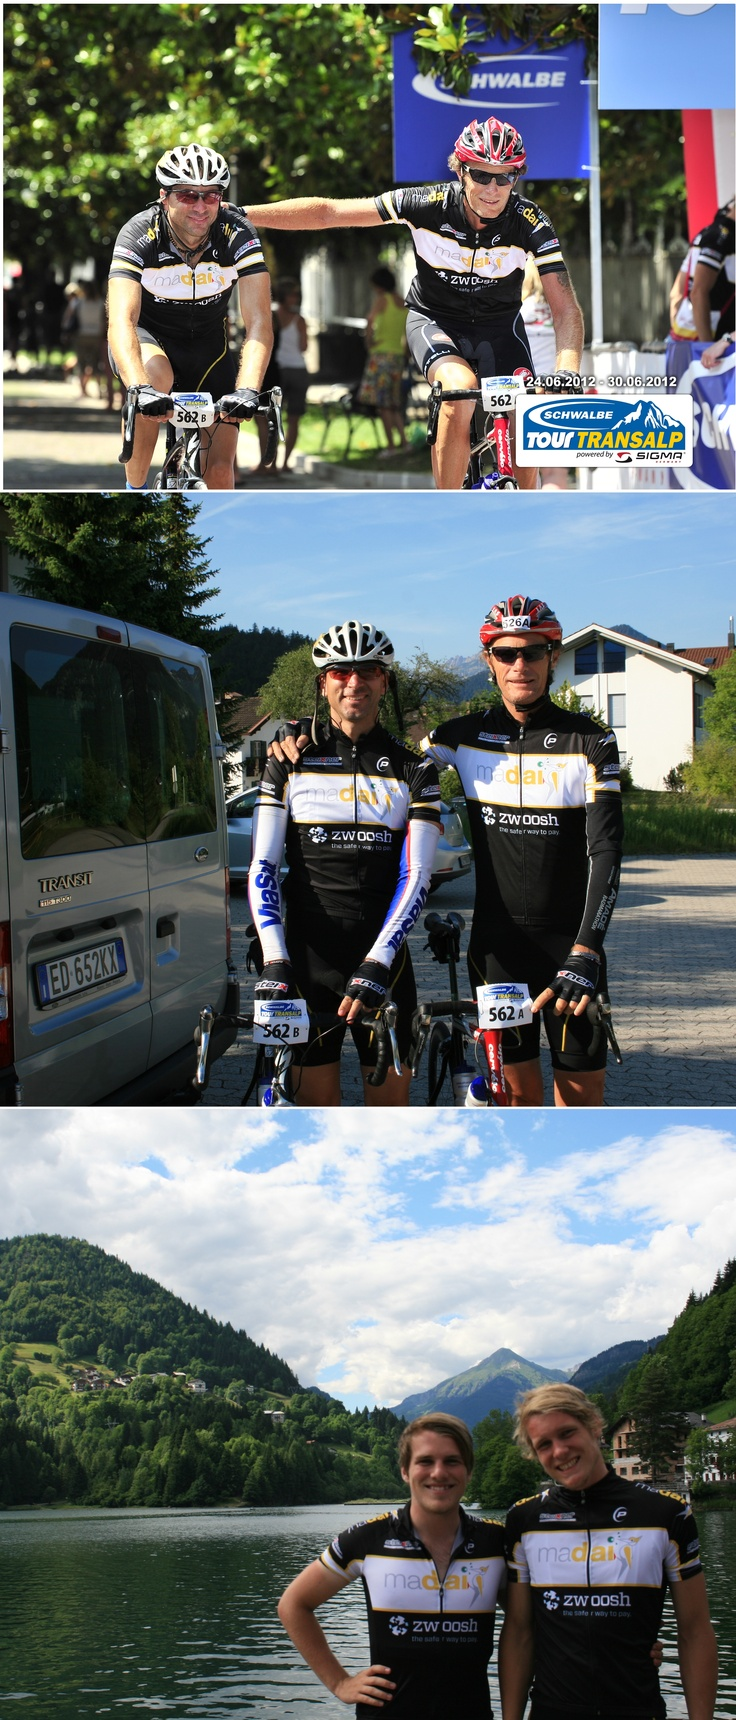 Go Madai Masters!!!     The team raced in the TransAlp Tour,  finishing in 38 hours 19 minutes! They cycled from Mittenwald in Bavaria to Arco at Lago di Garda.